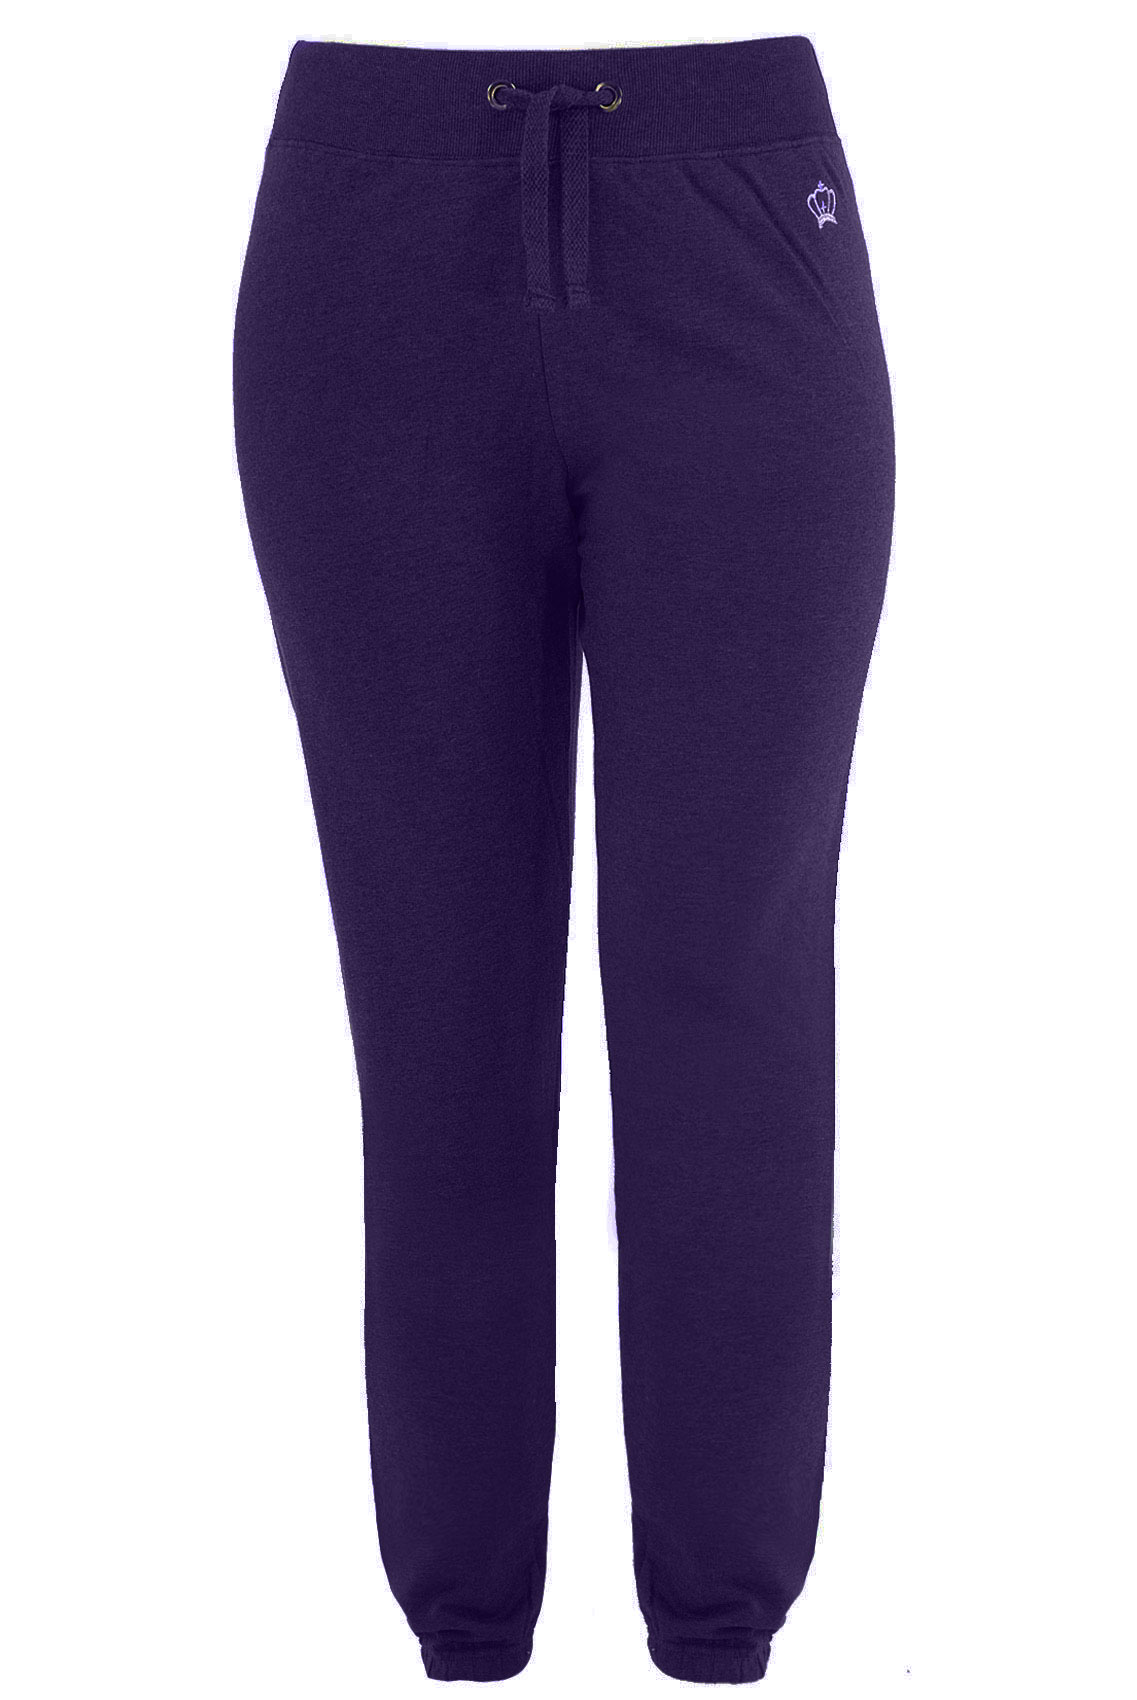 Shop for sweatpants & joggers purple pants and other bottoms products at ShapeShop. Browse our bottoms selections and save today.